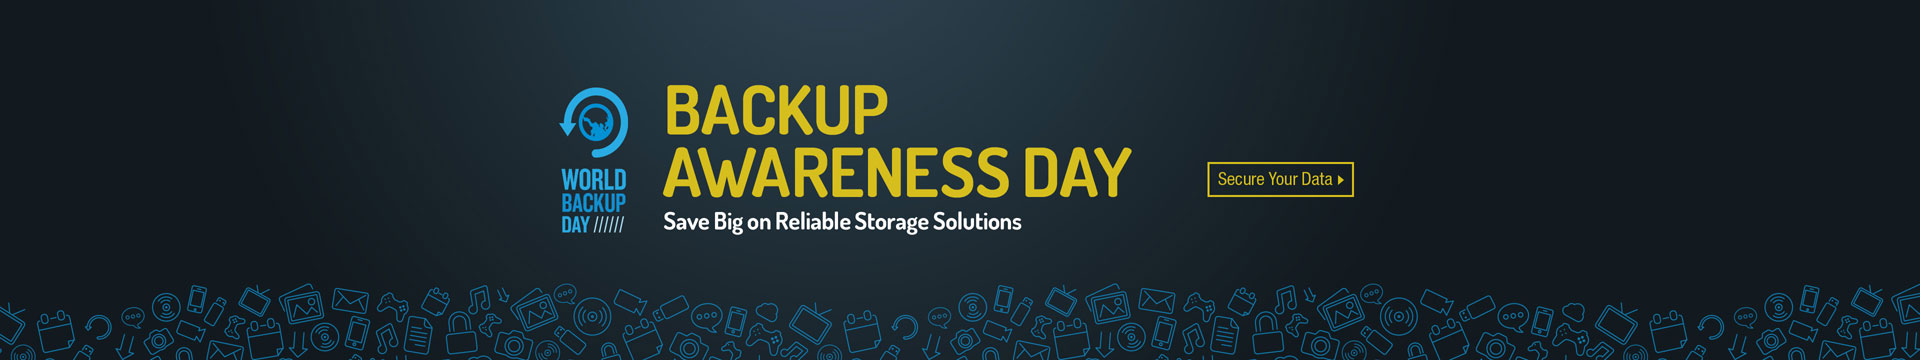 Backup Awareness day